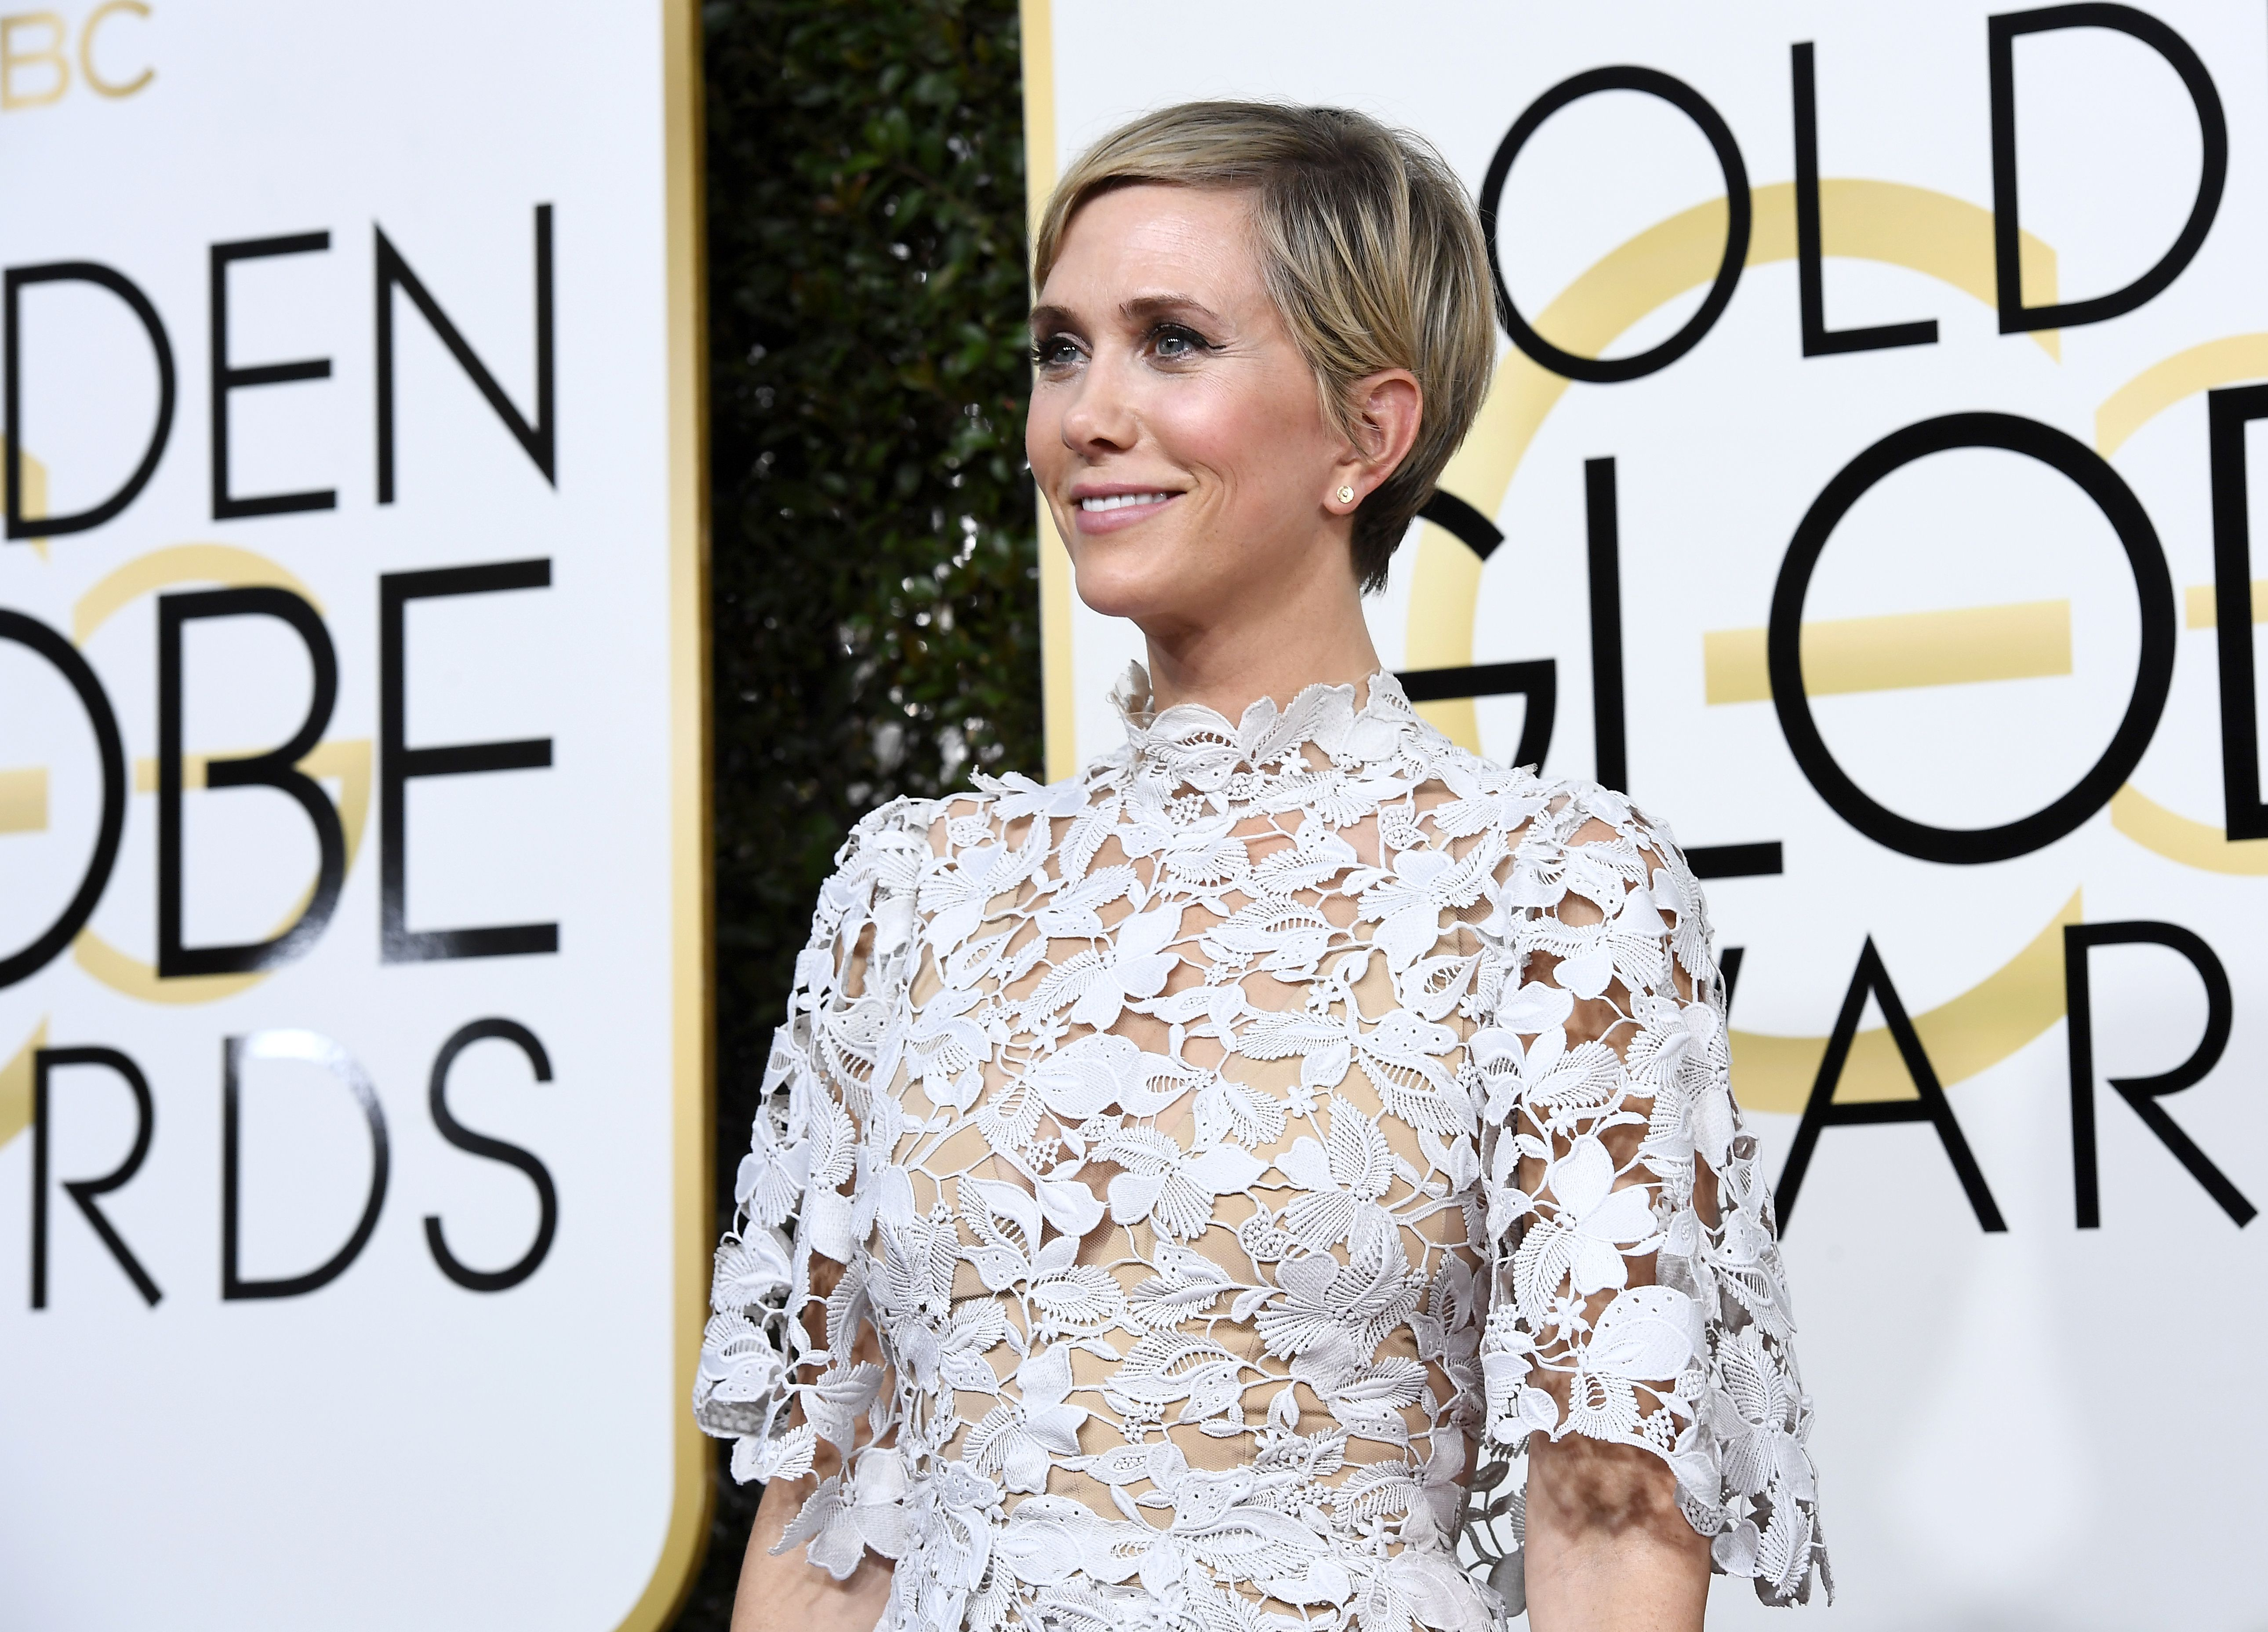 Golden Globes 2017: Kristen Wiig and Steve Carell present ...